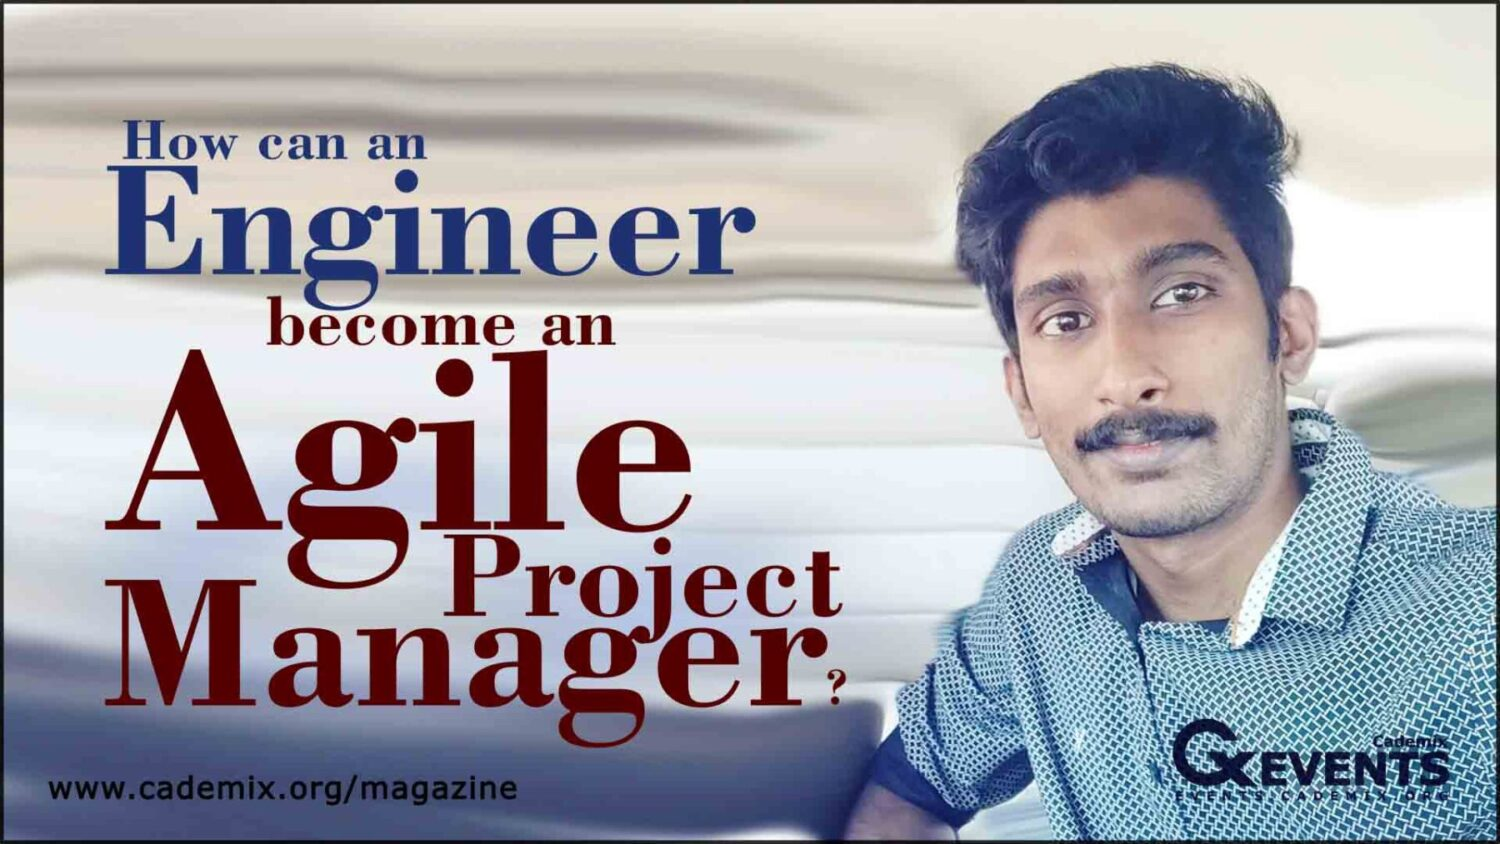 How Engineer become Agile Project Manager Nivin Anil Cademix Magazine